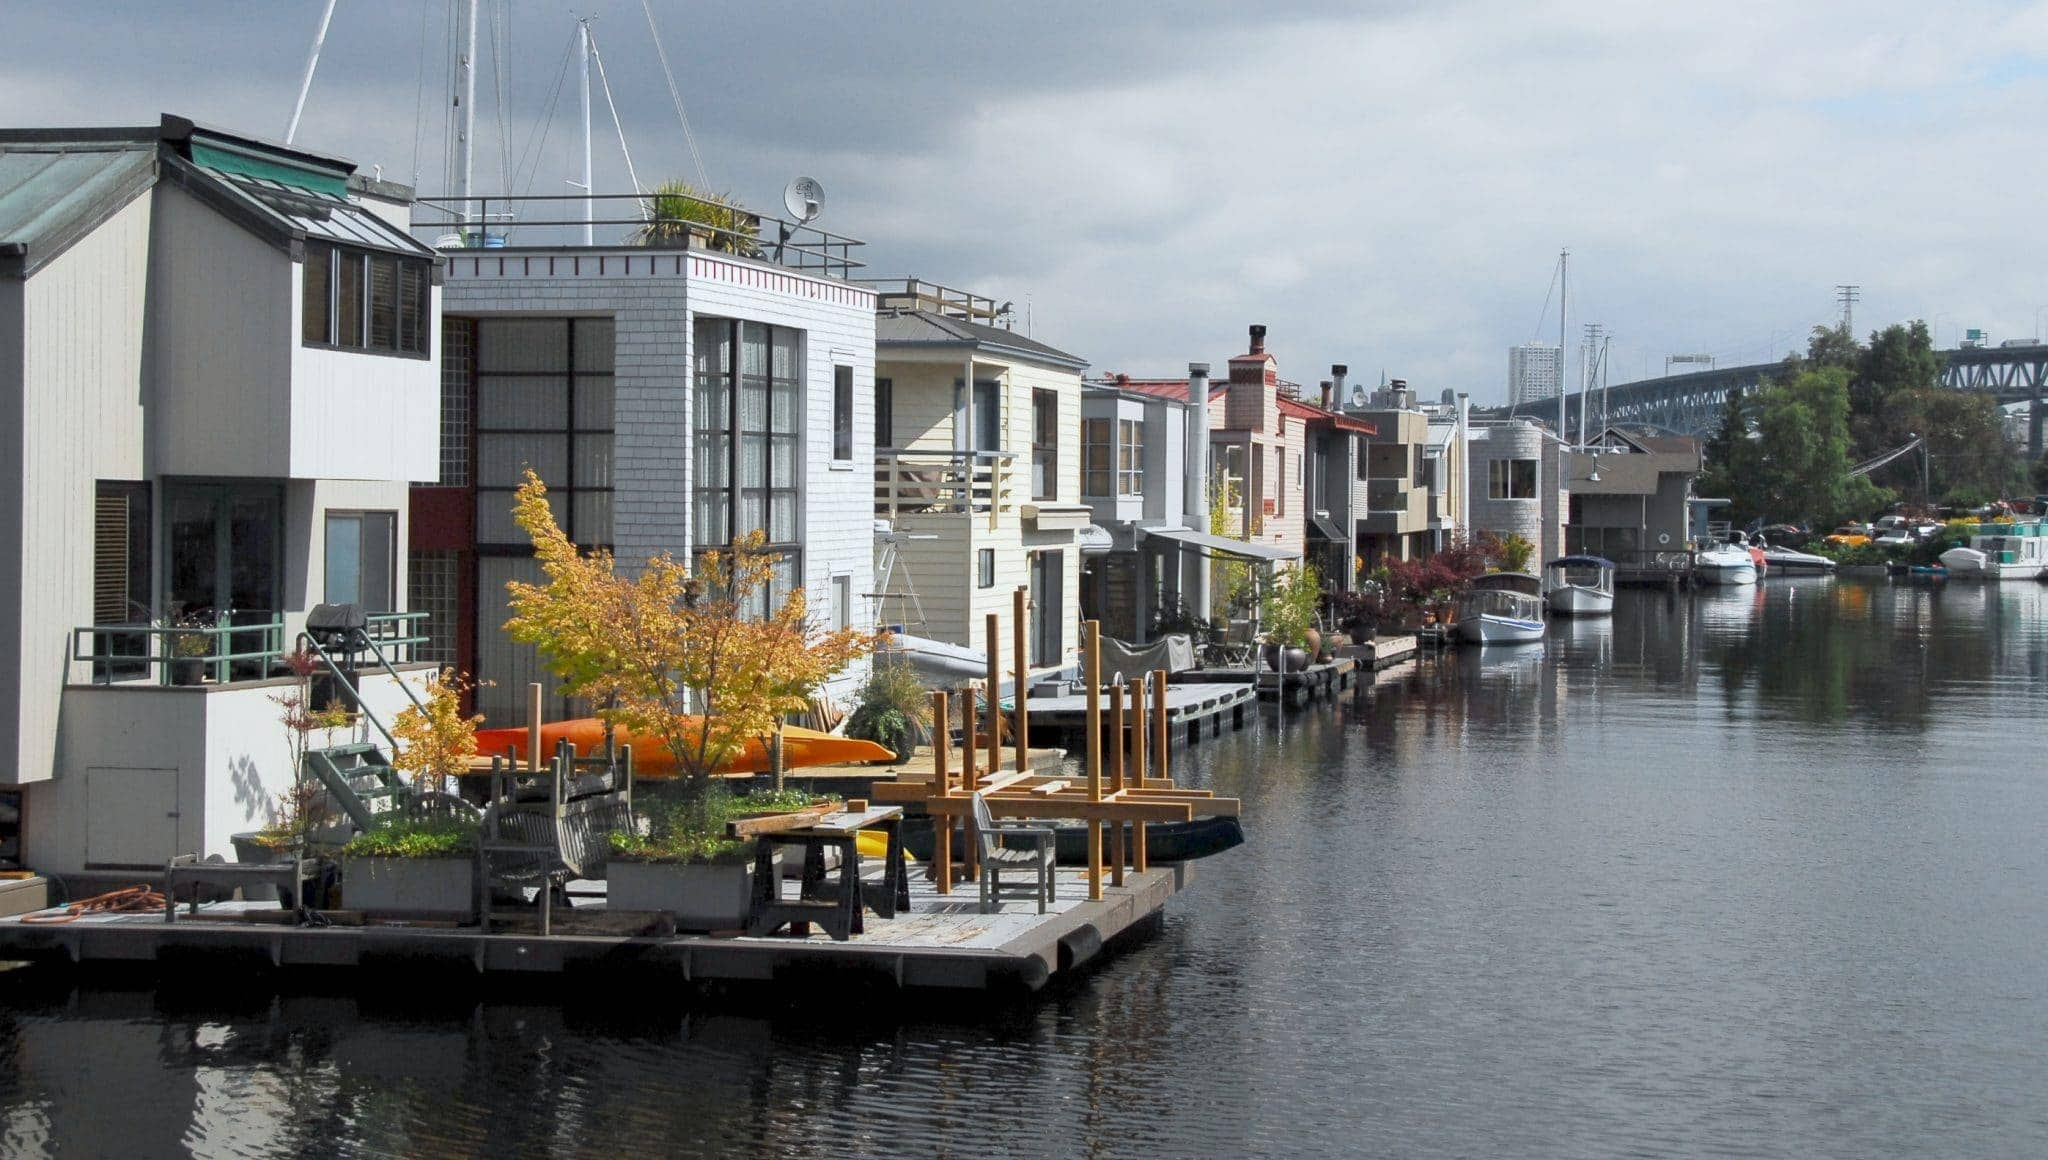 Living on a houseboat?